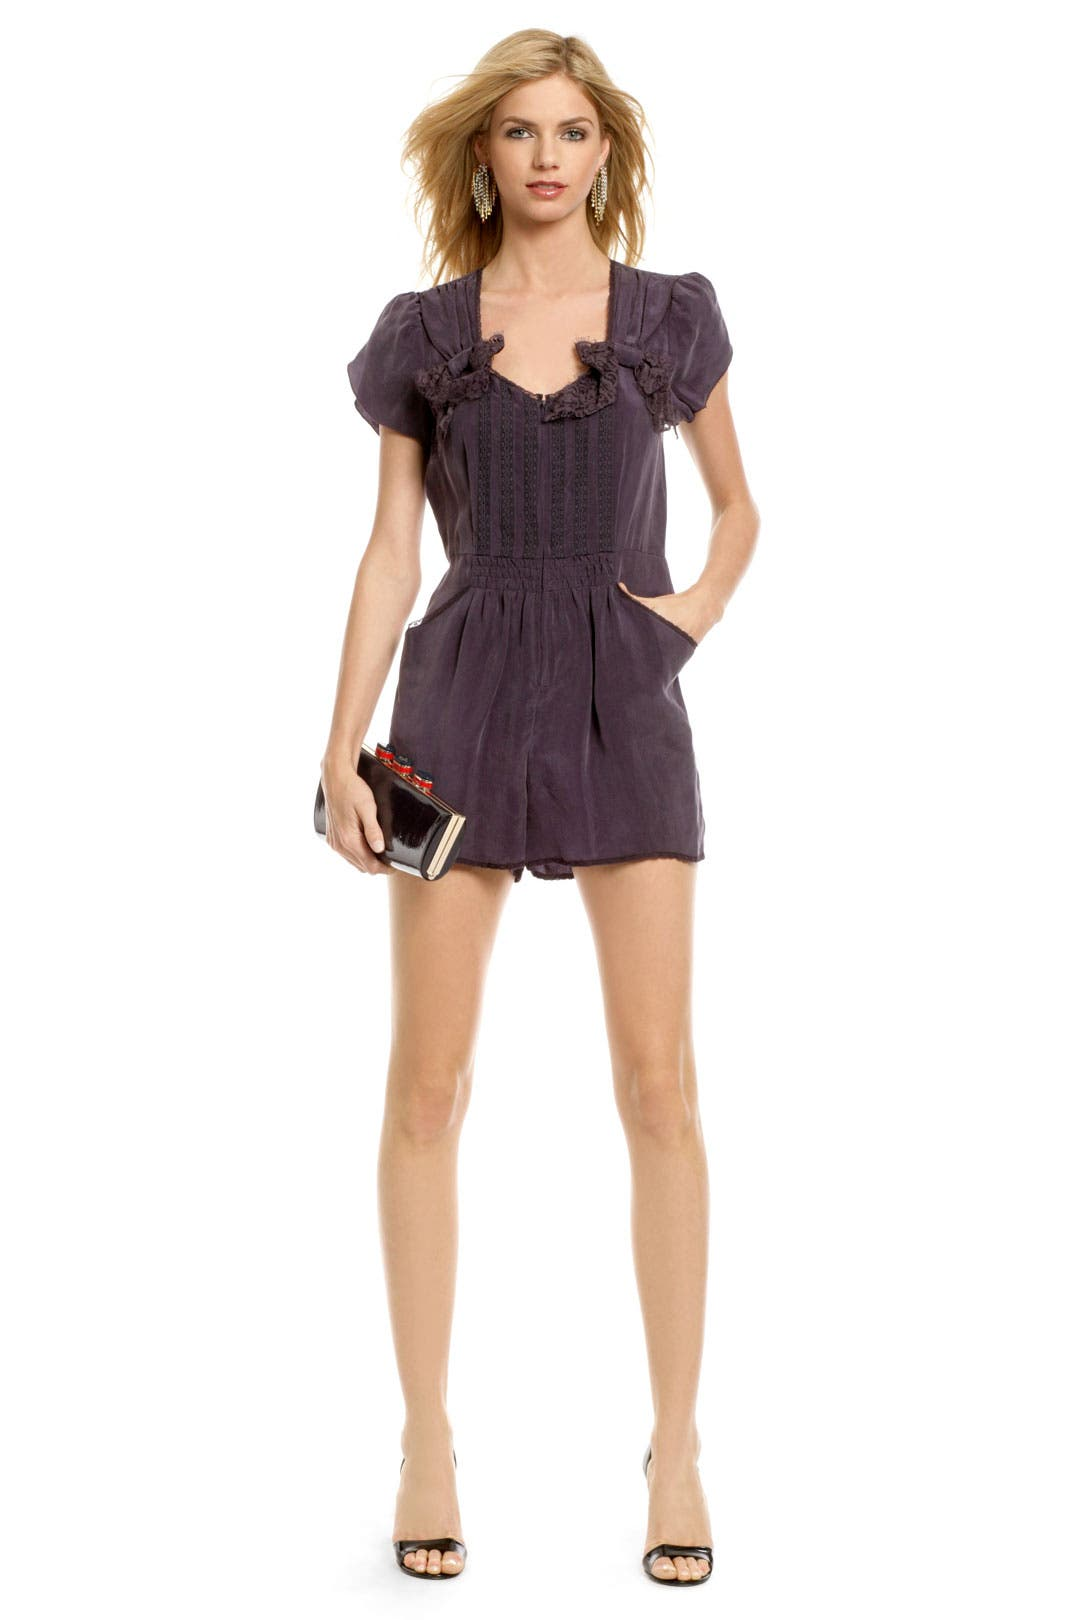 Lexington Sweetheart Romper by Anna Sui